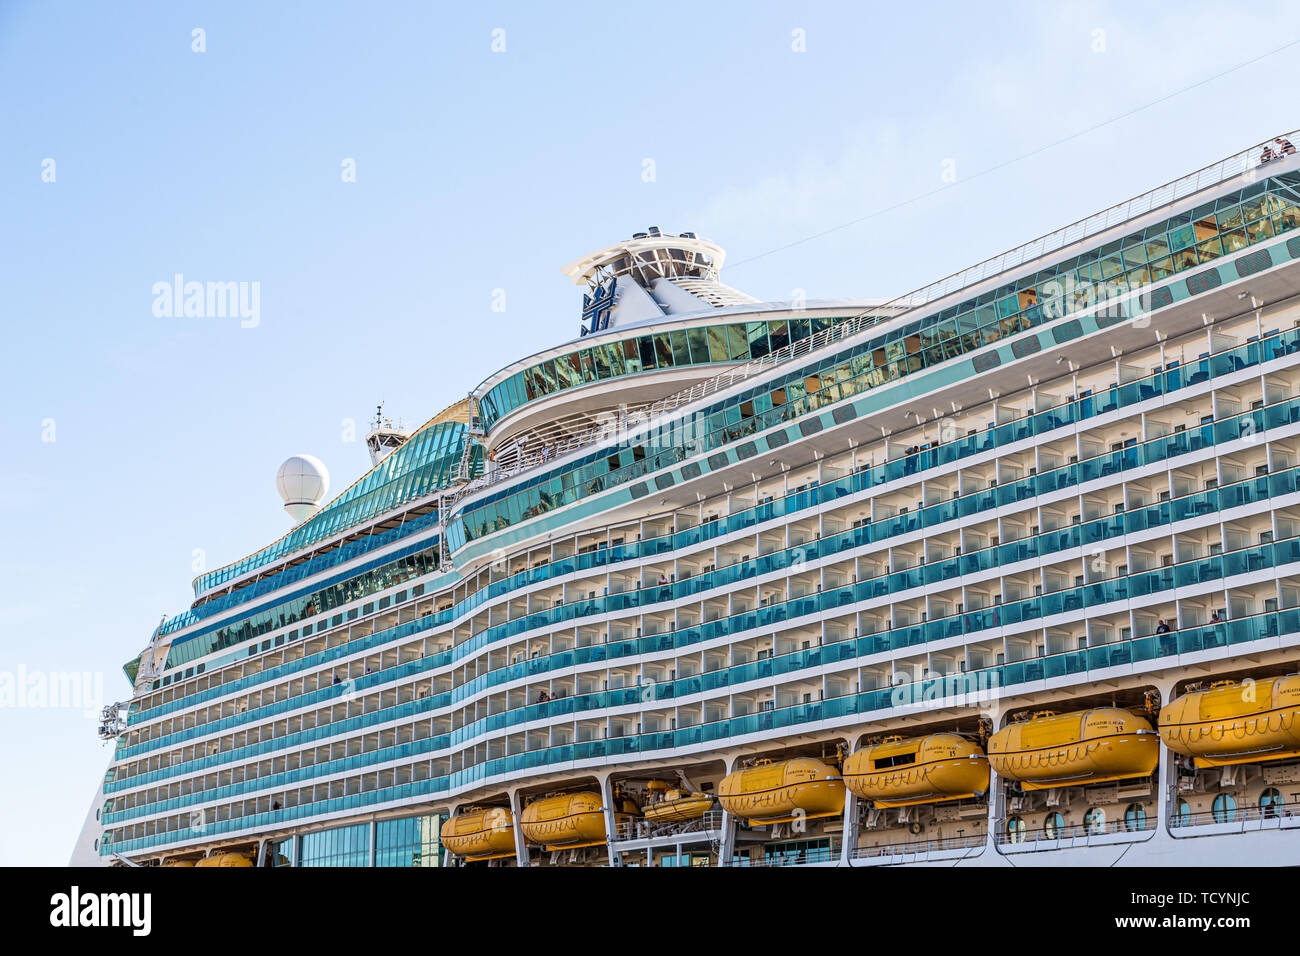 Balconies on Royal Caribbean Ship - Stock Image